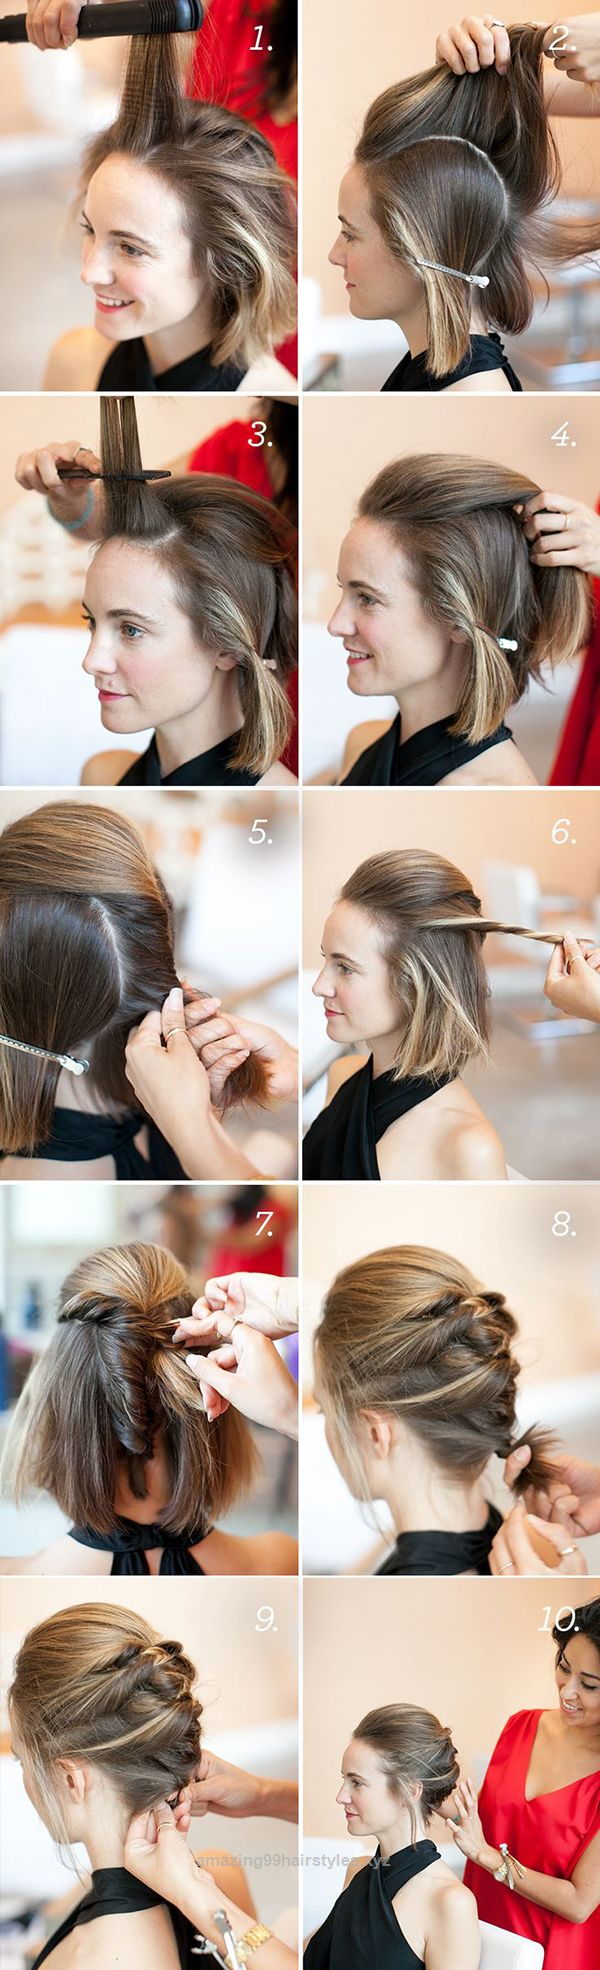 Gorgeous Prom Hairstyles For Short Hair  Prom hairstyles Short